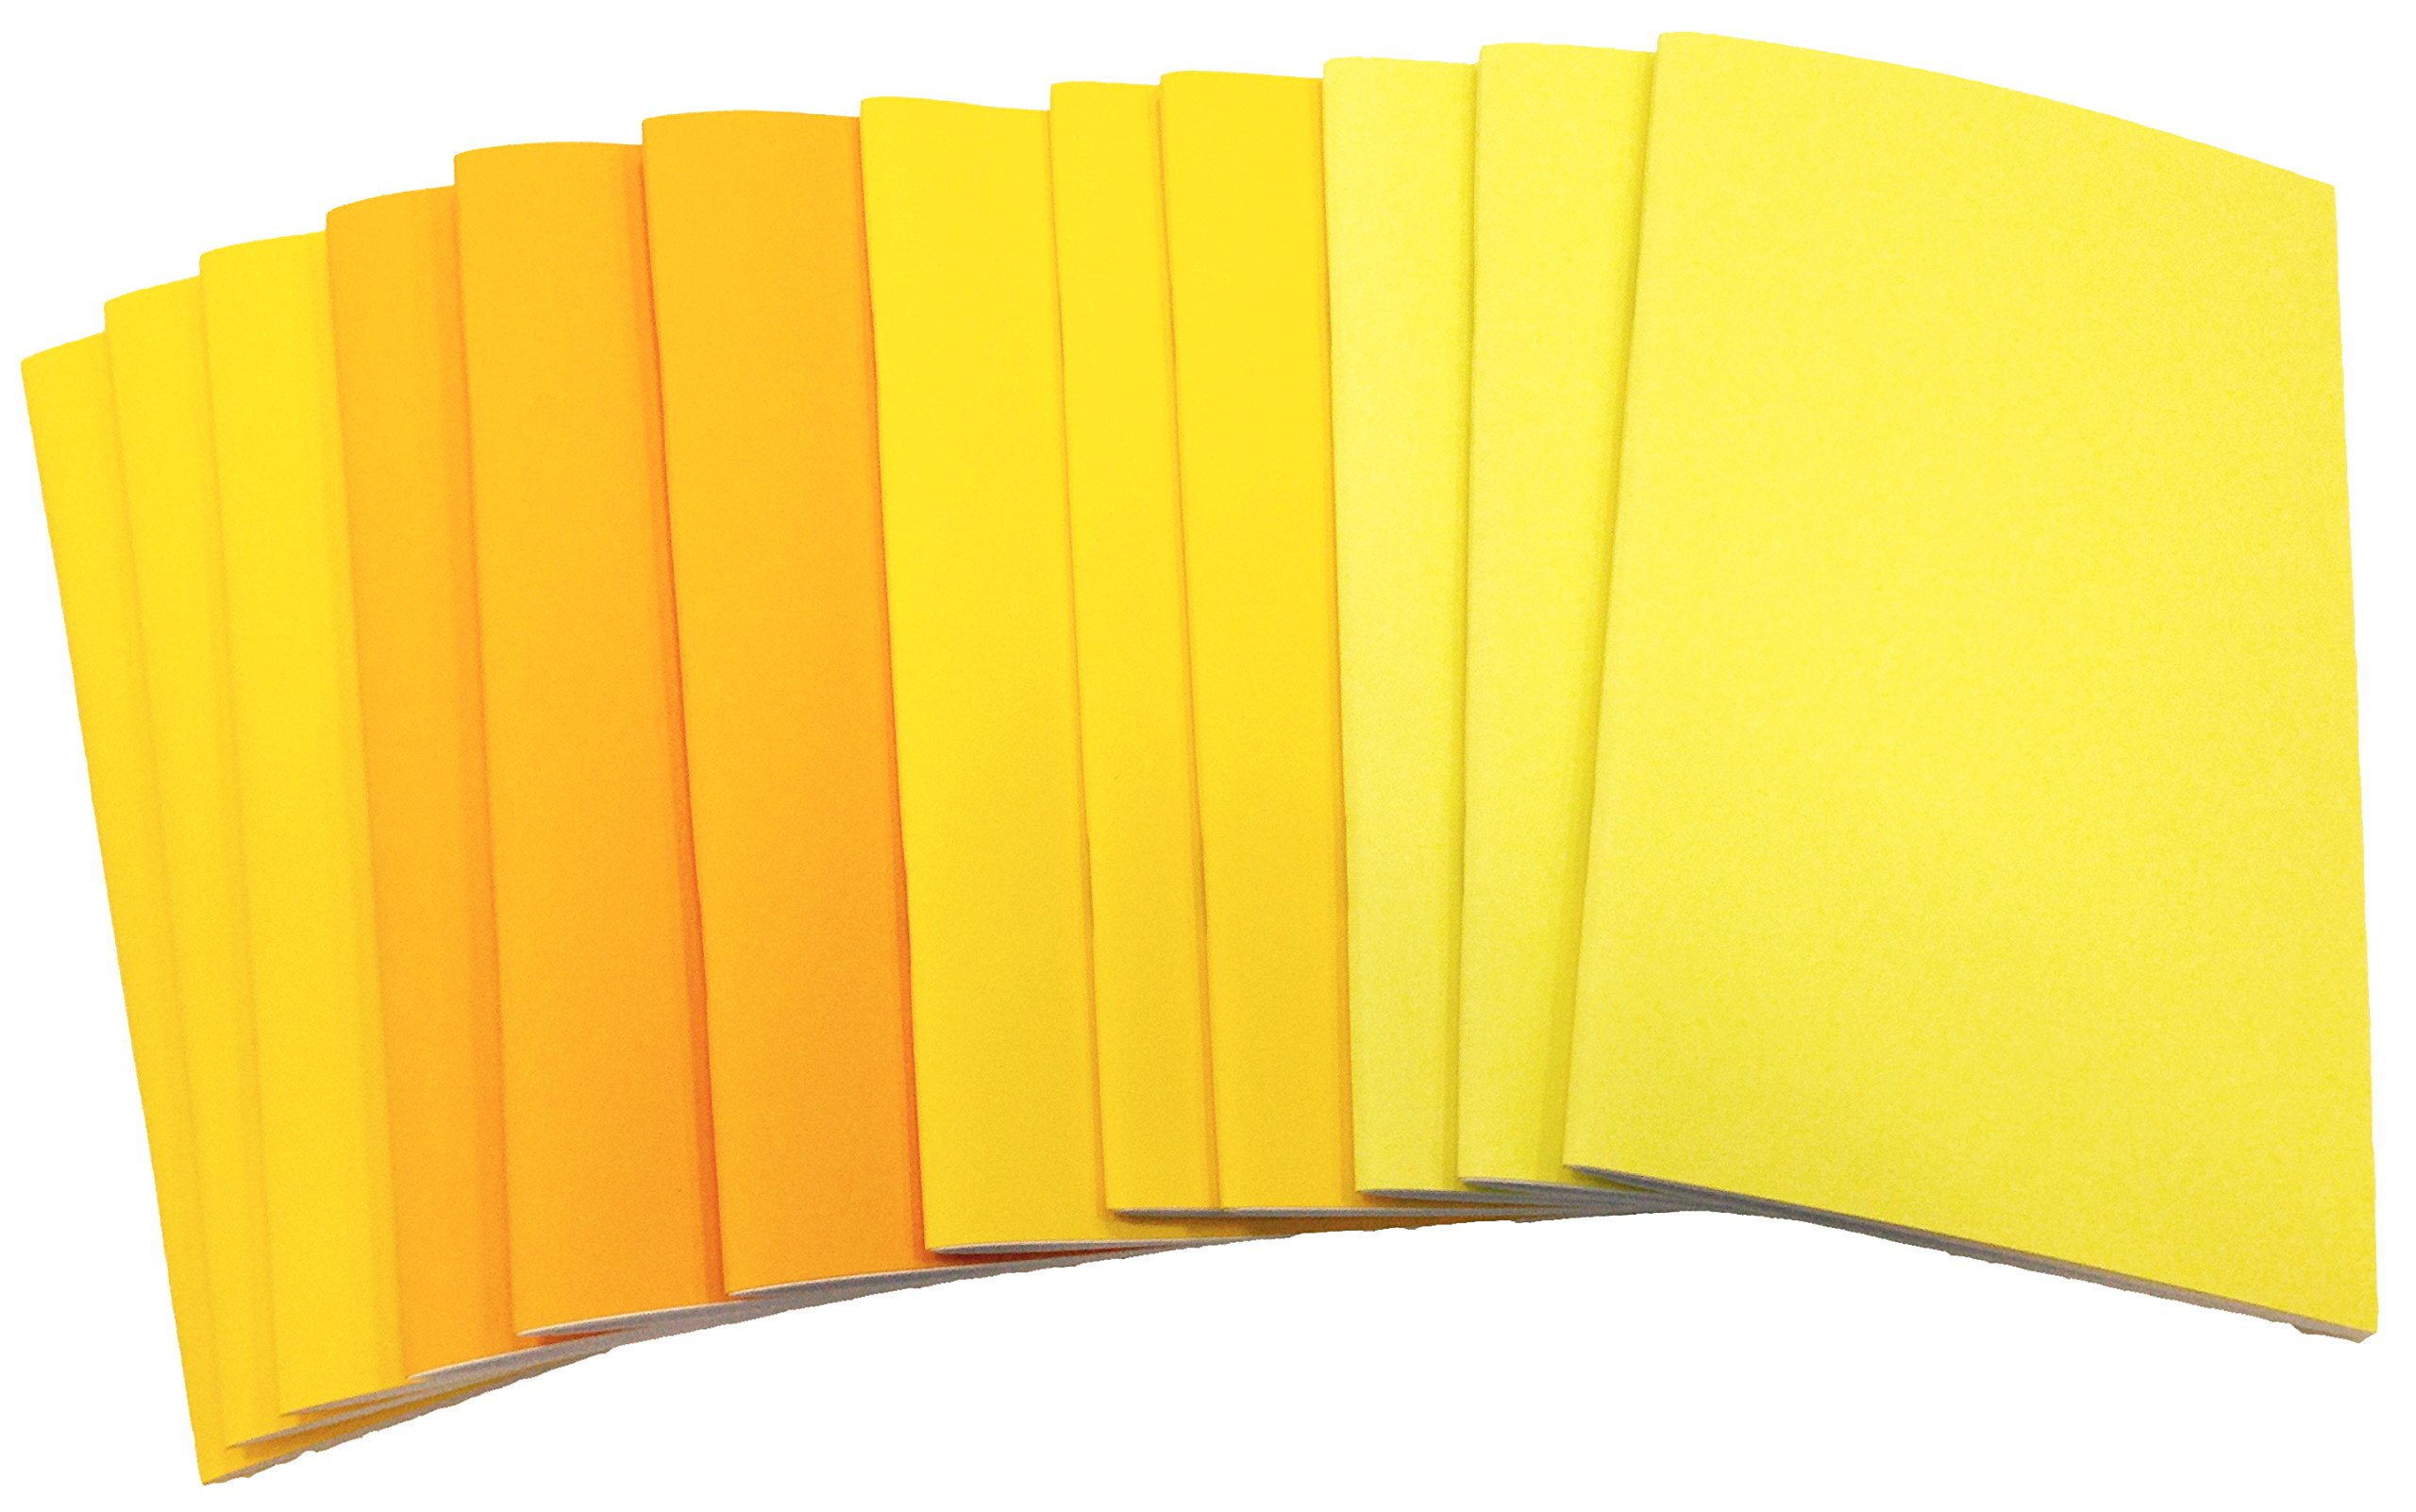 DEBRADALE DESIGNS - Brite & Clever Kid's 40 Blank Page Booklets - 5-1/2'' x 8-1/2'' - 12 Pack - Yellow